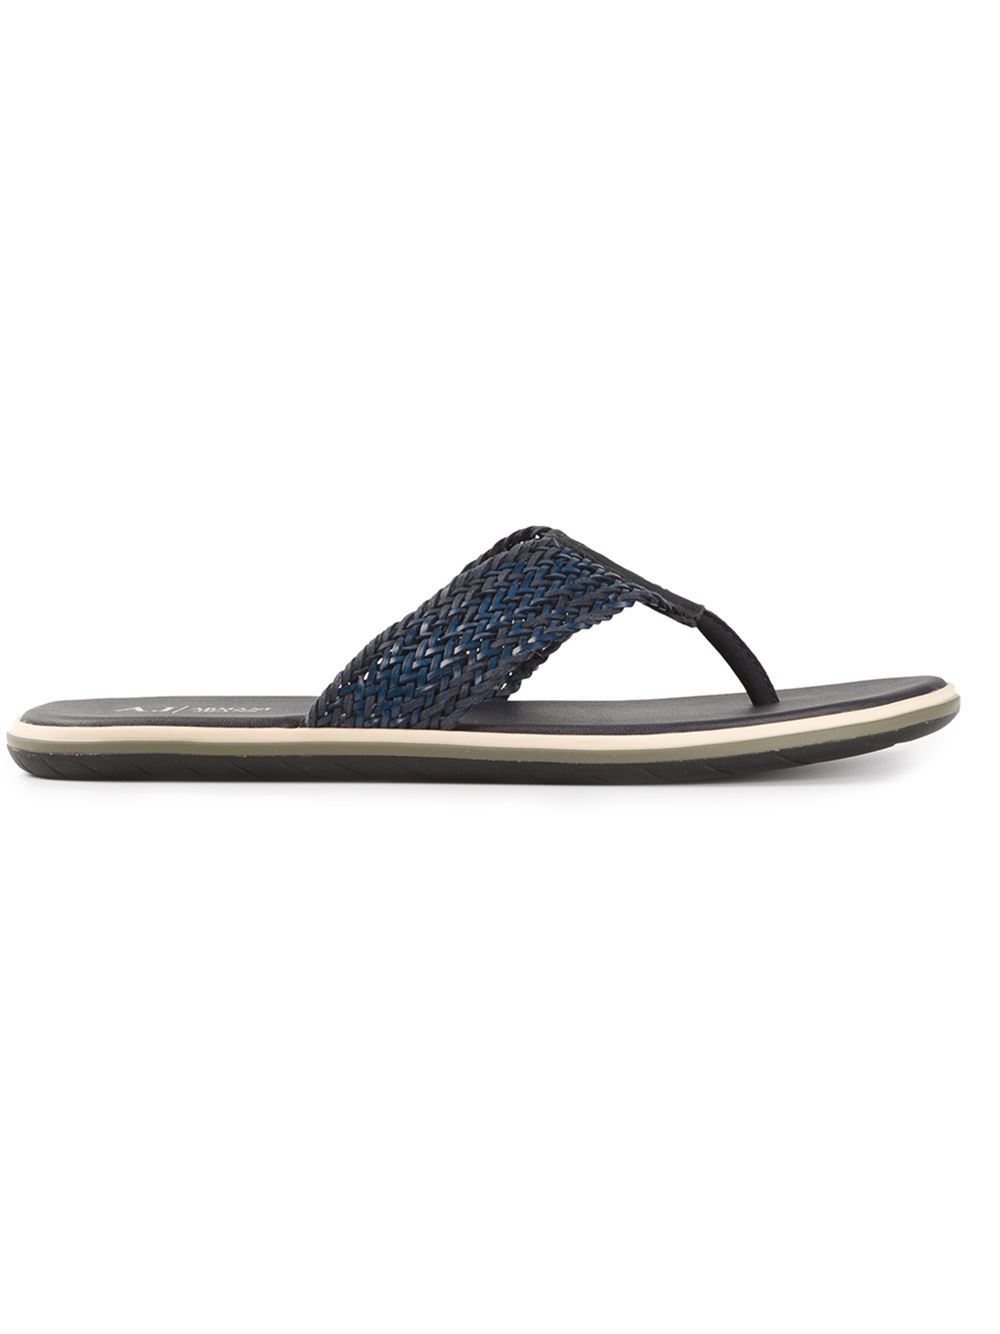 082bd9d0b9da Armani Jeans Thong Strap Sandals in Blue for Men - Lyst